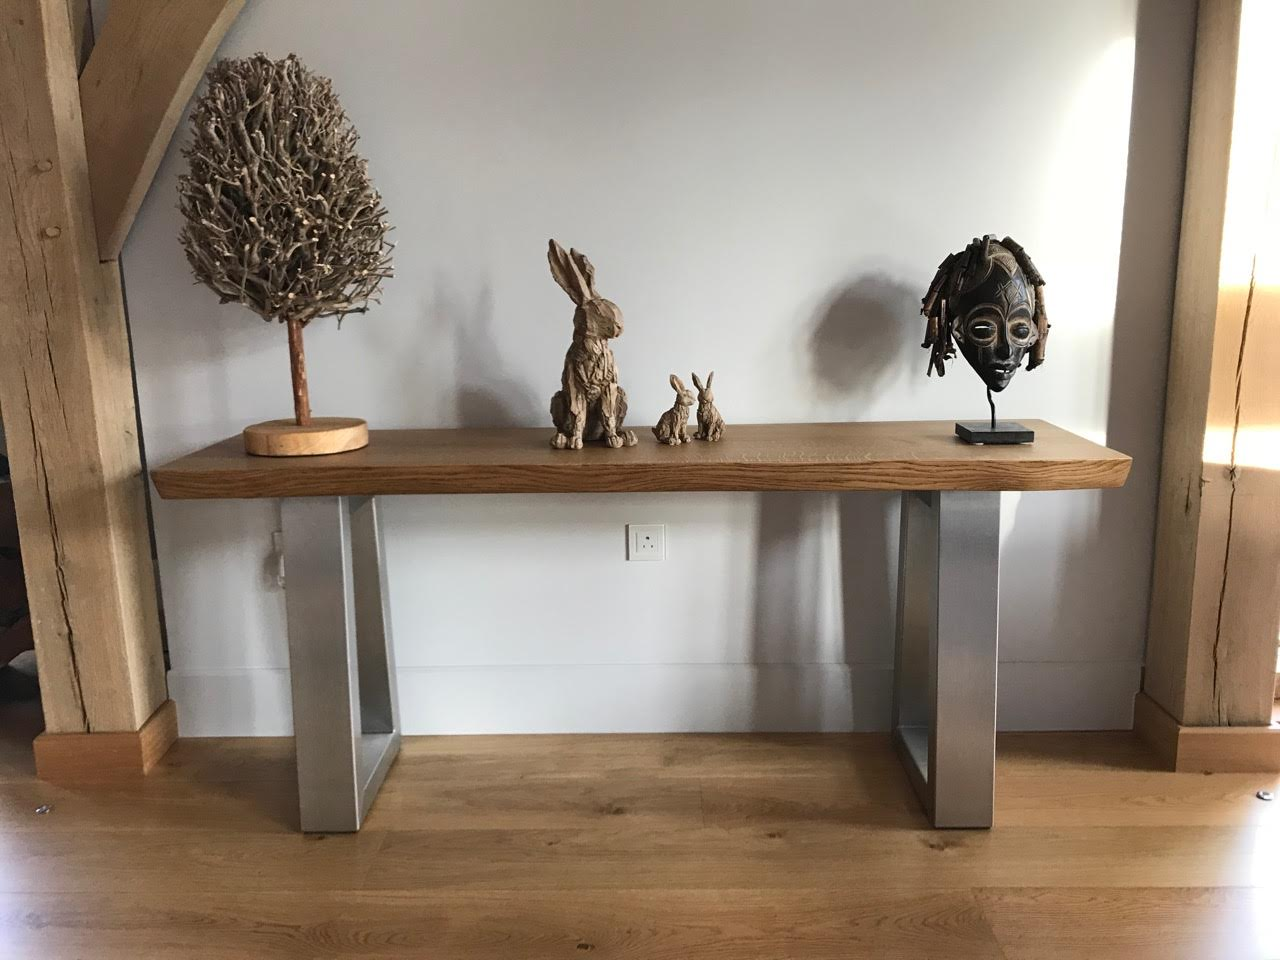 Rustic Console table project 614 Abacus Tables image 1